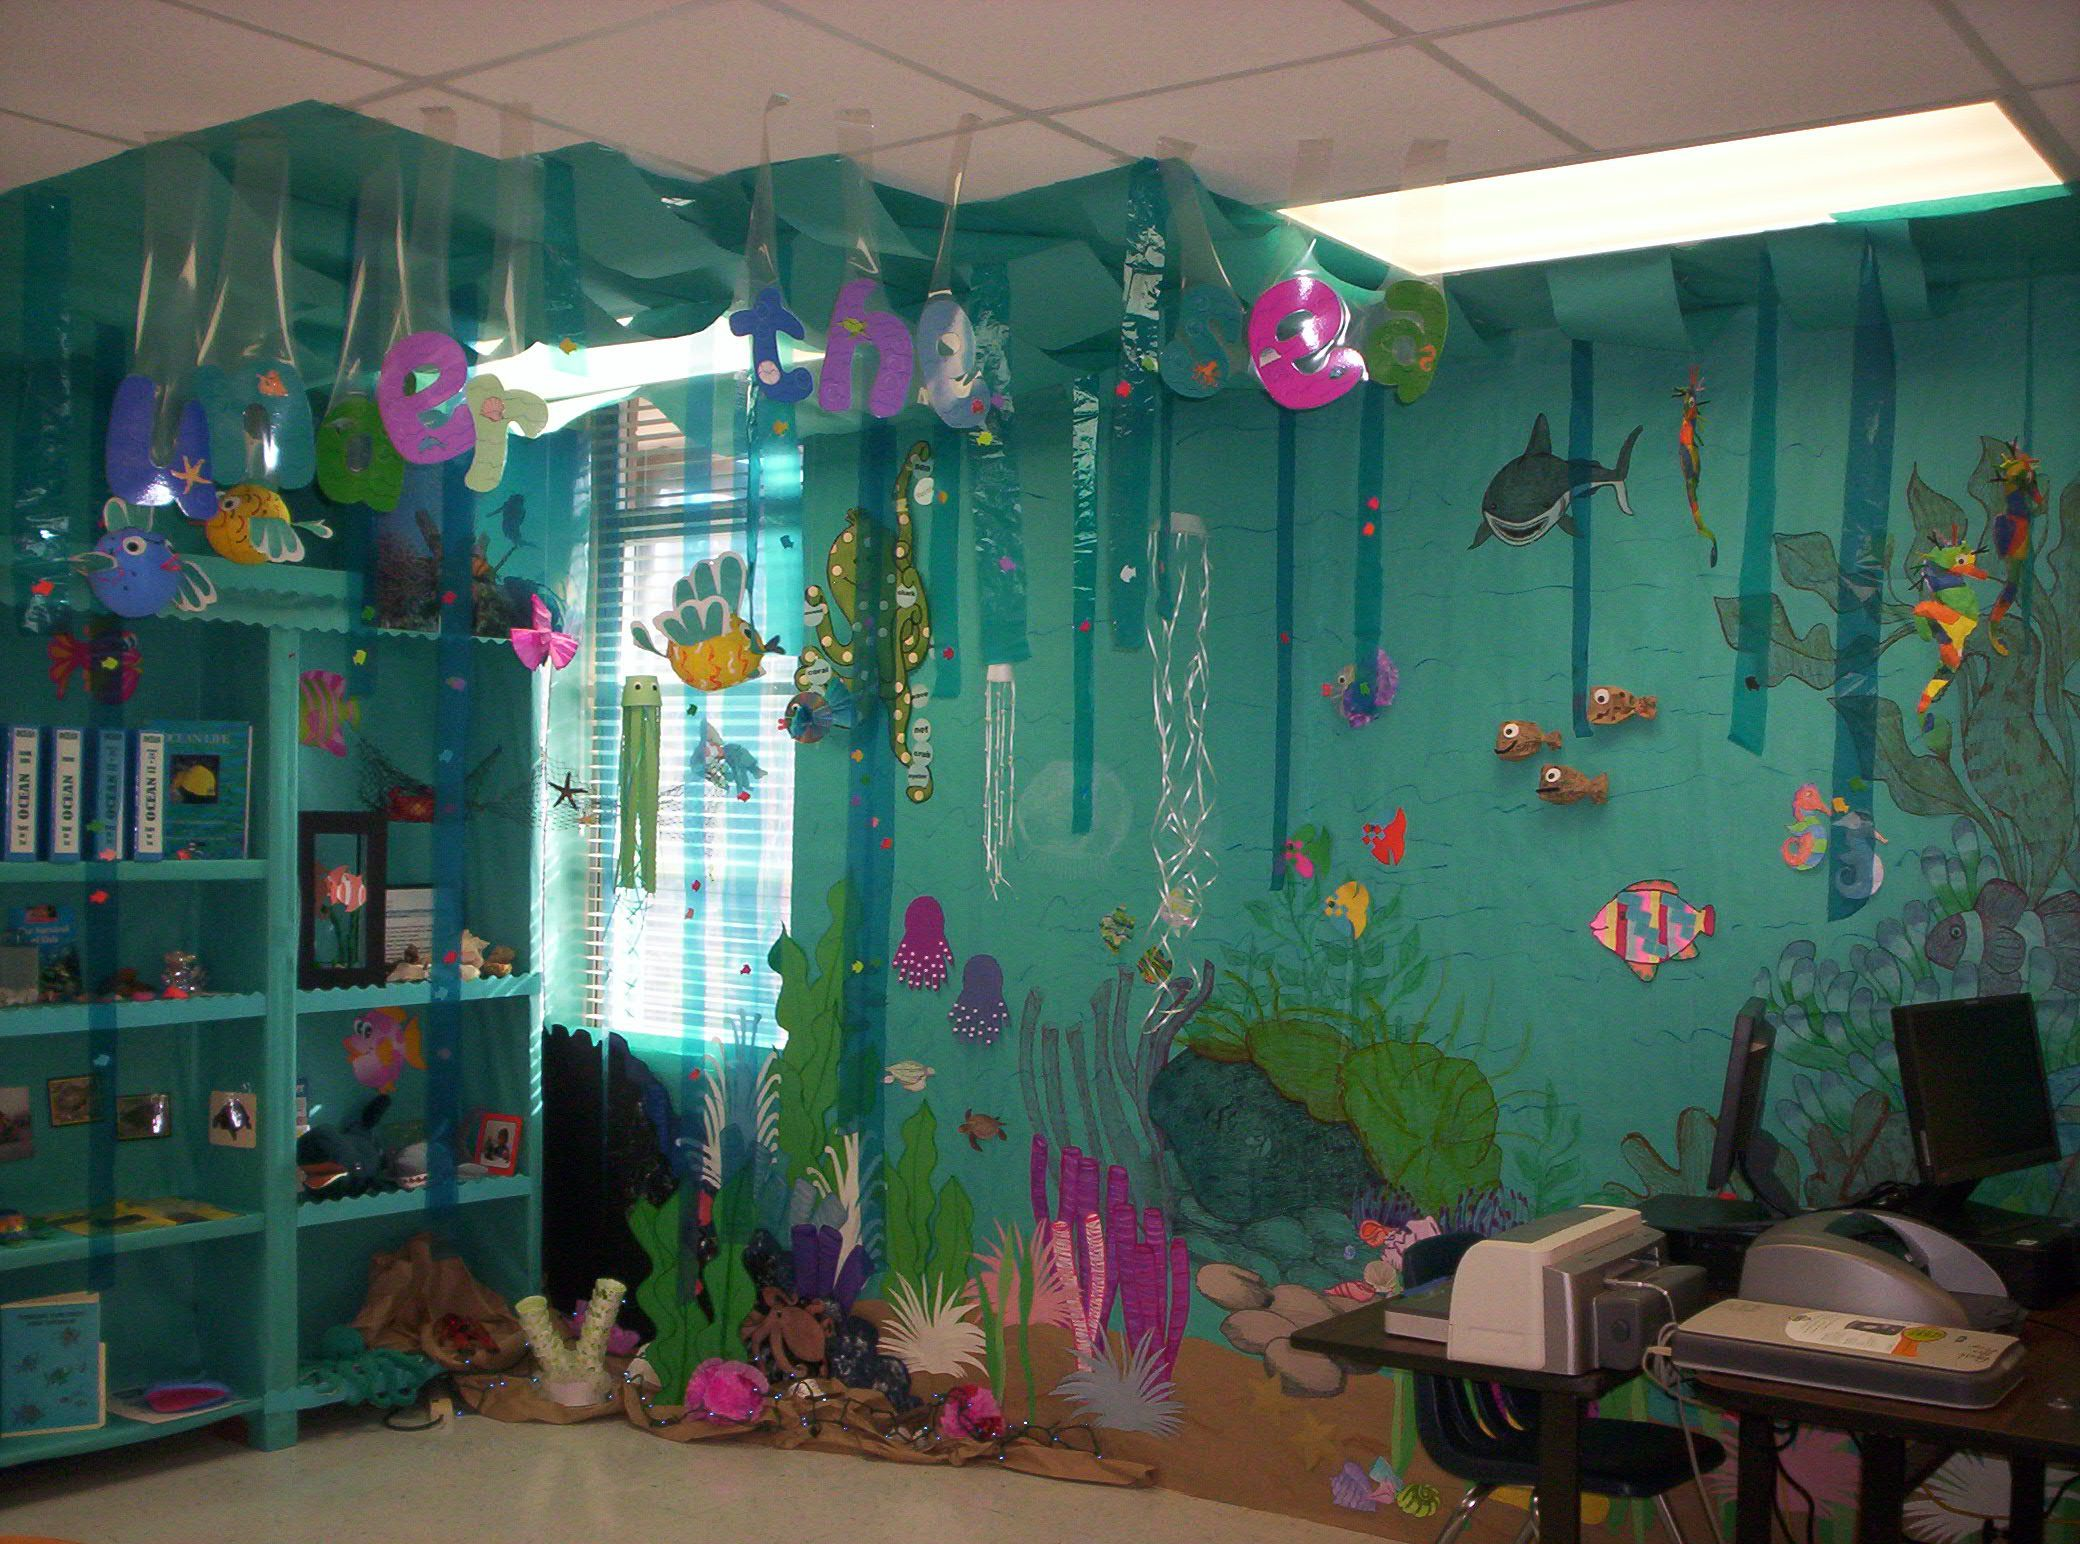 Classroom Decoration Ideas On : Under the sea classroom theme ideas